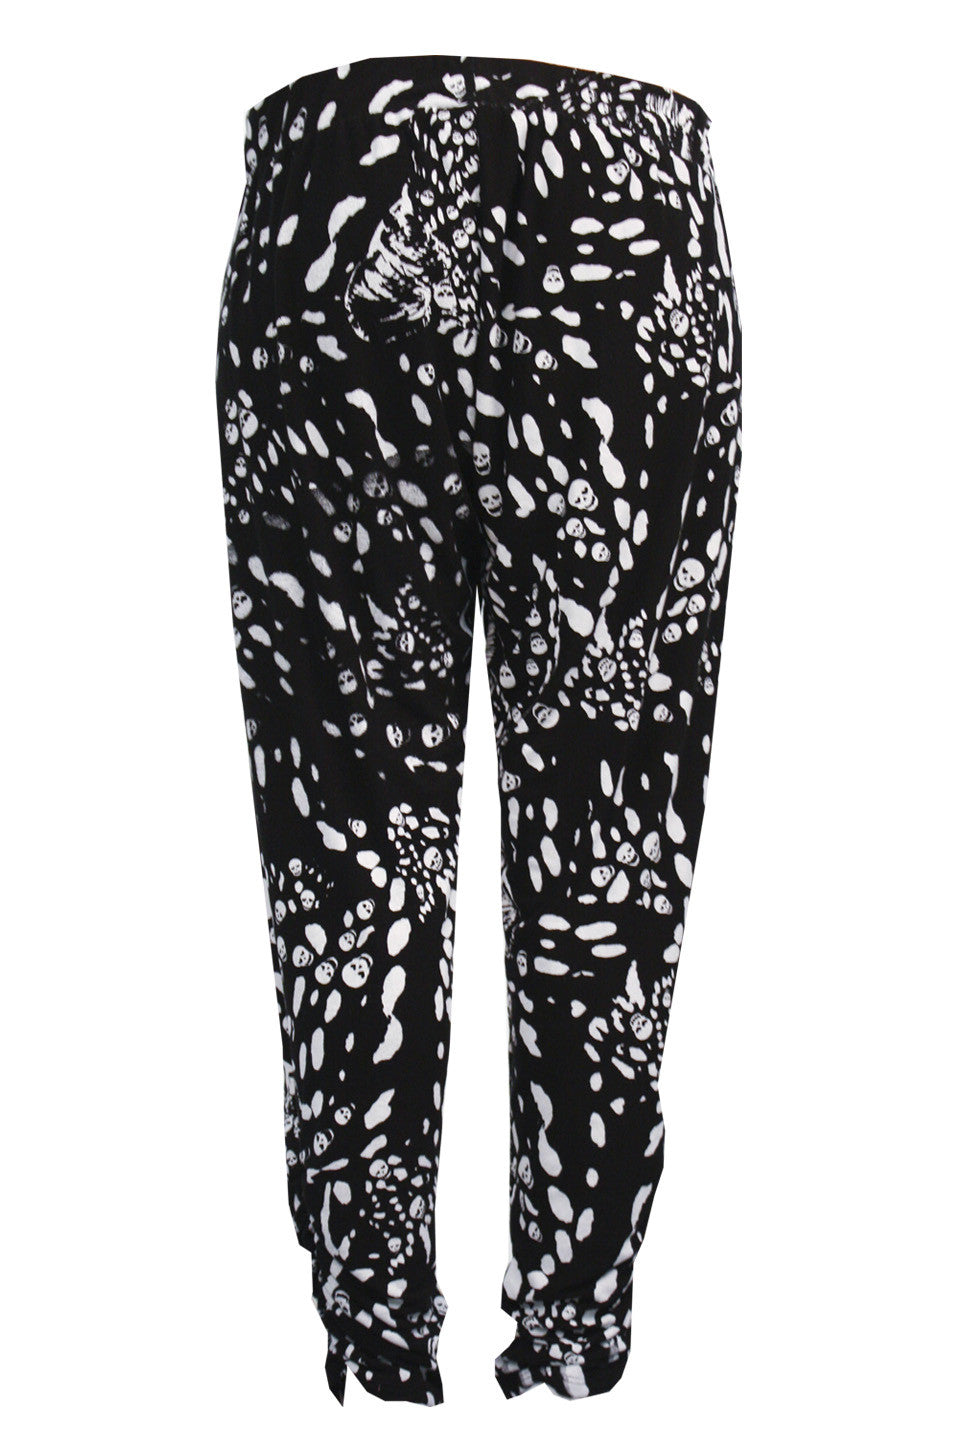 Mimi Leopard Print Pant with Sheering FINAL SALE - Lauren Moshi - 4